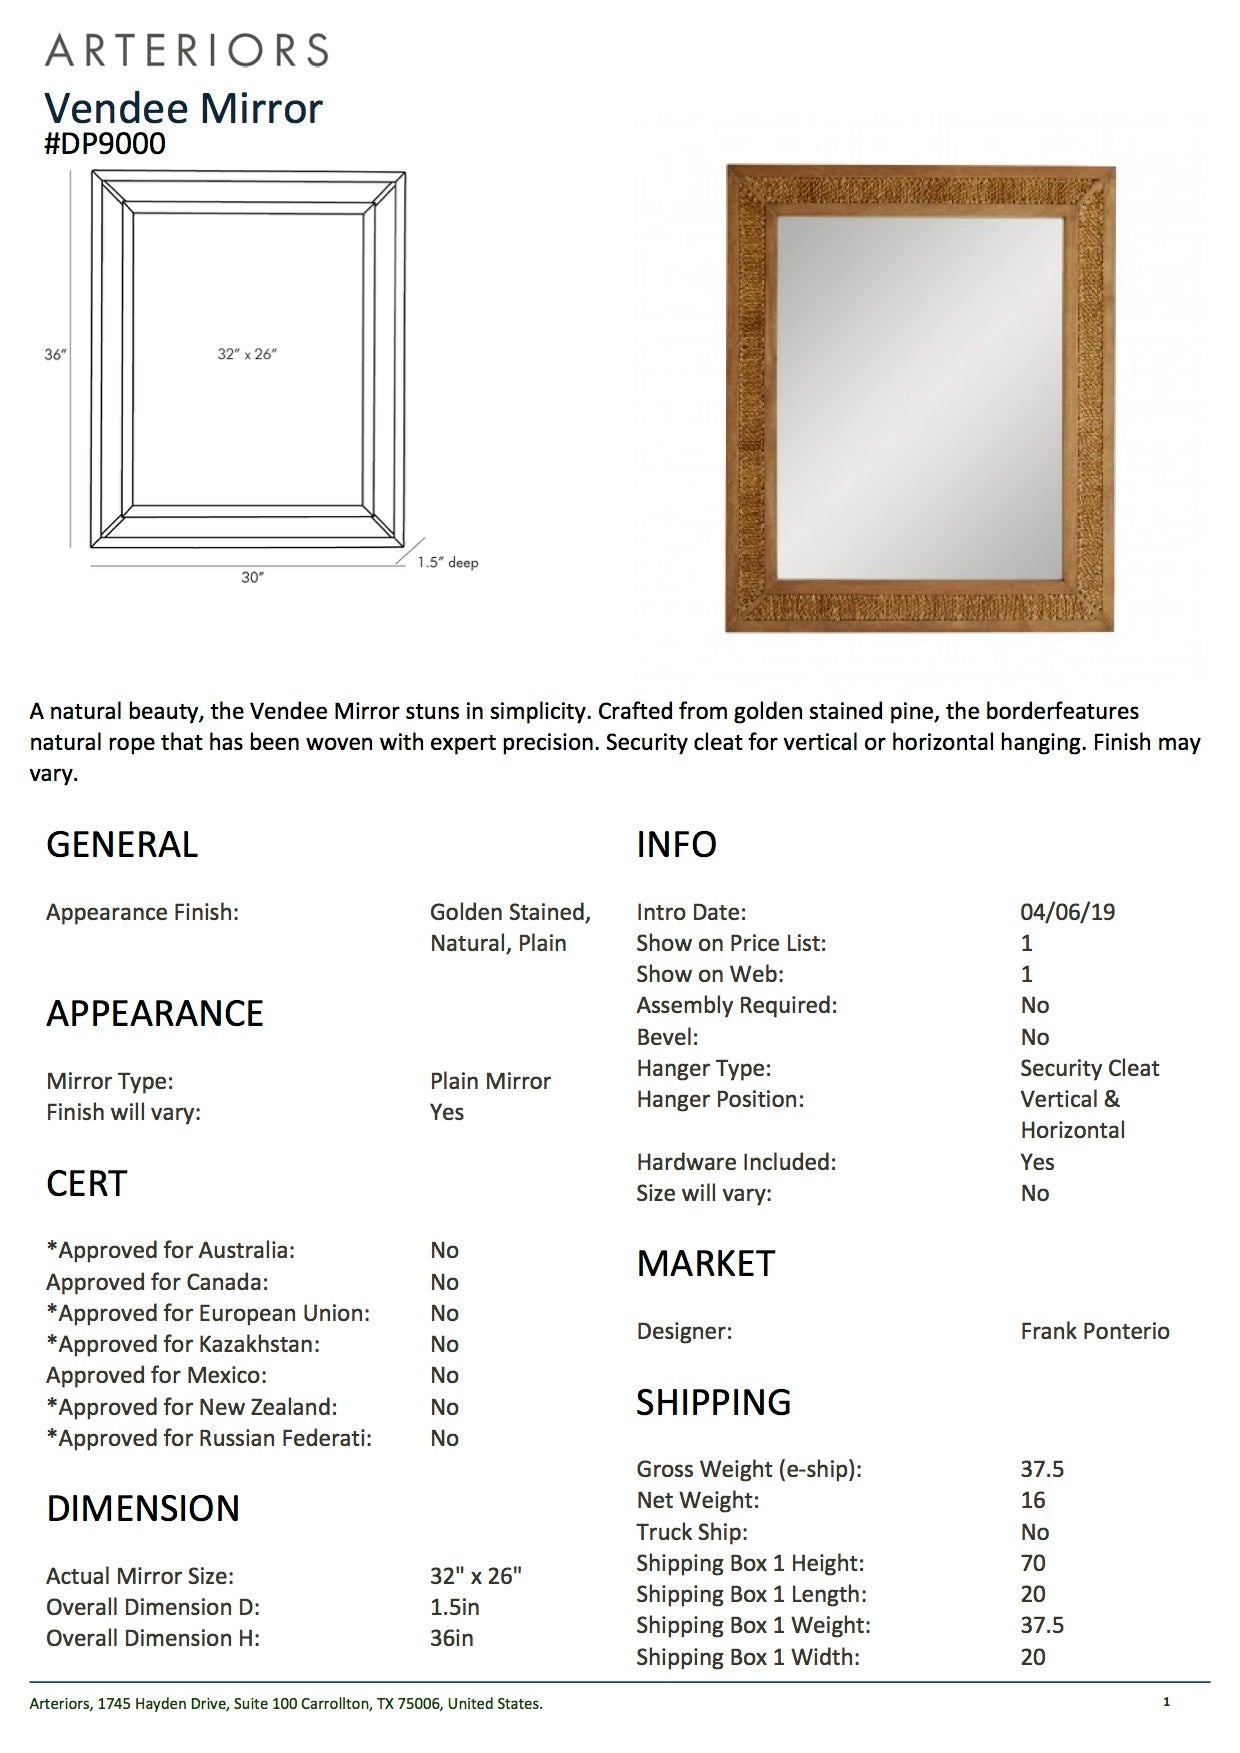 arteriors vendee mirror vertical tearsheet